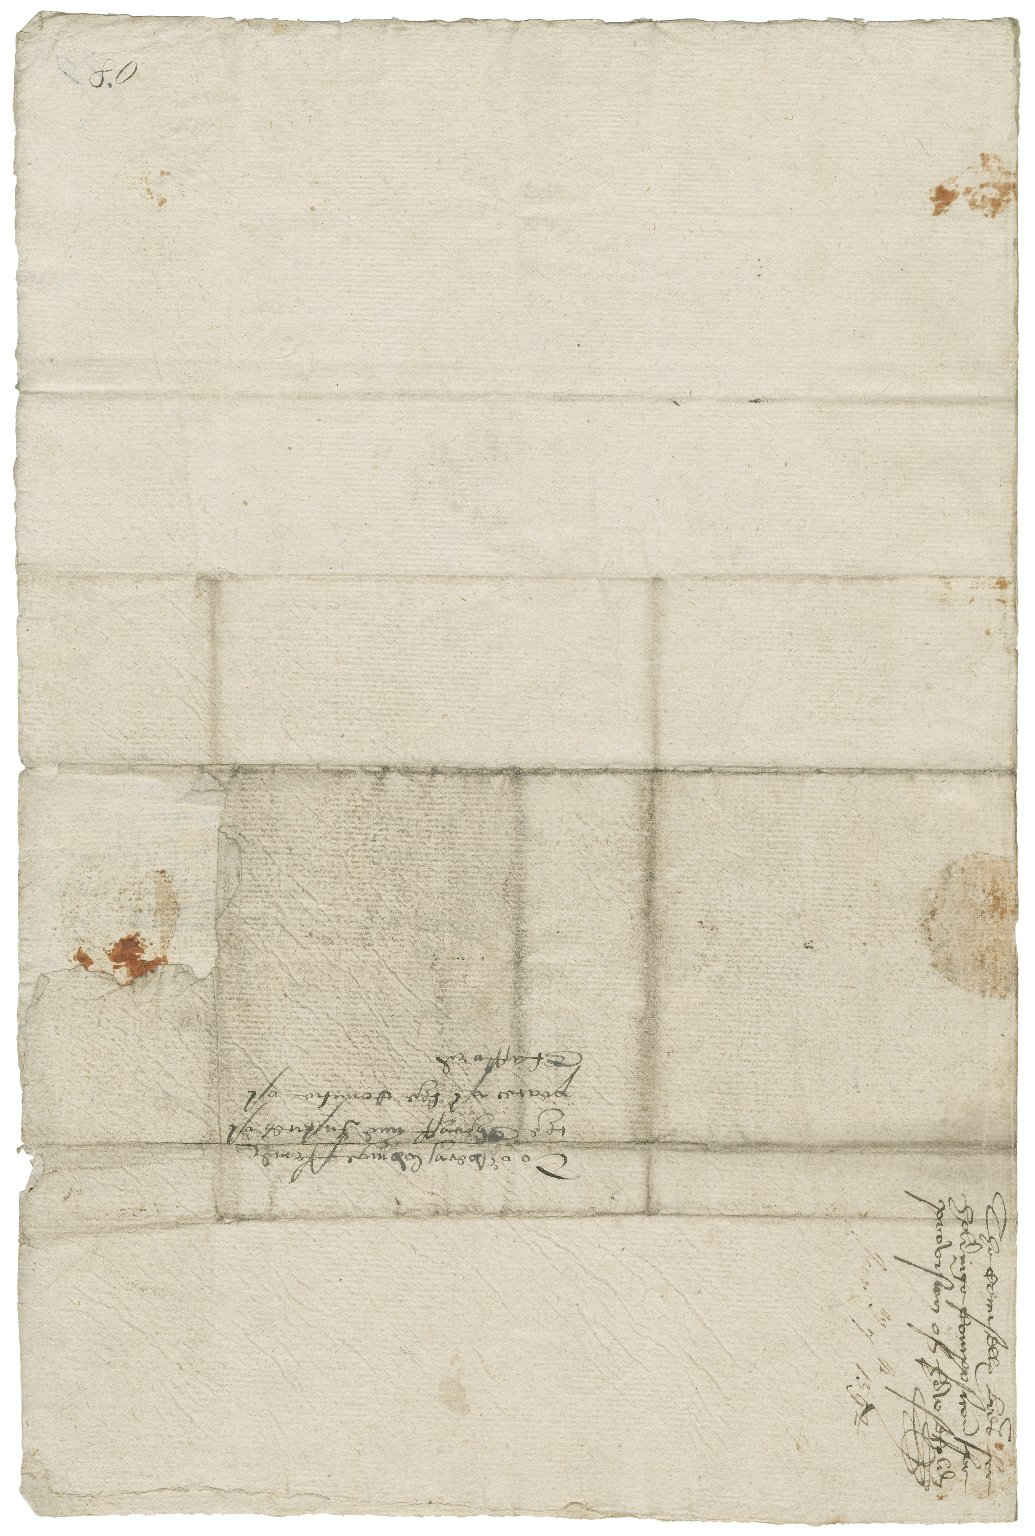 Letter from the Privy Council, Hampton Court, to the sheriff and justices of the peace in Staffordshire